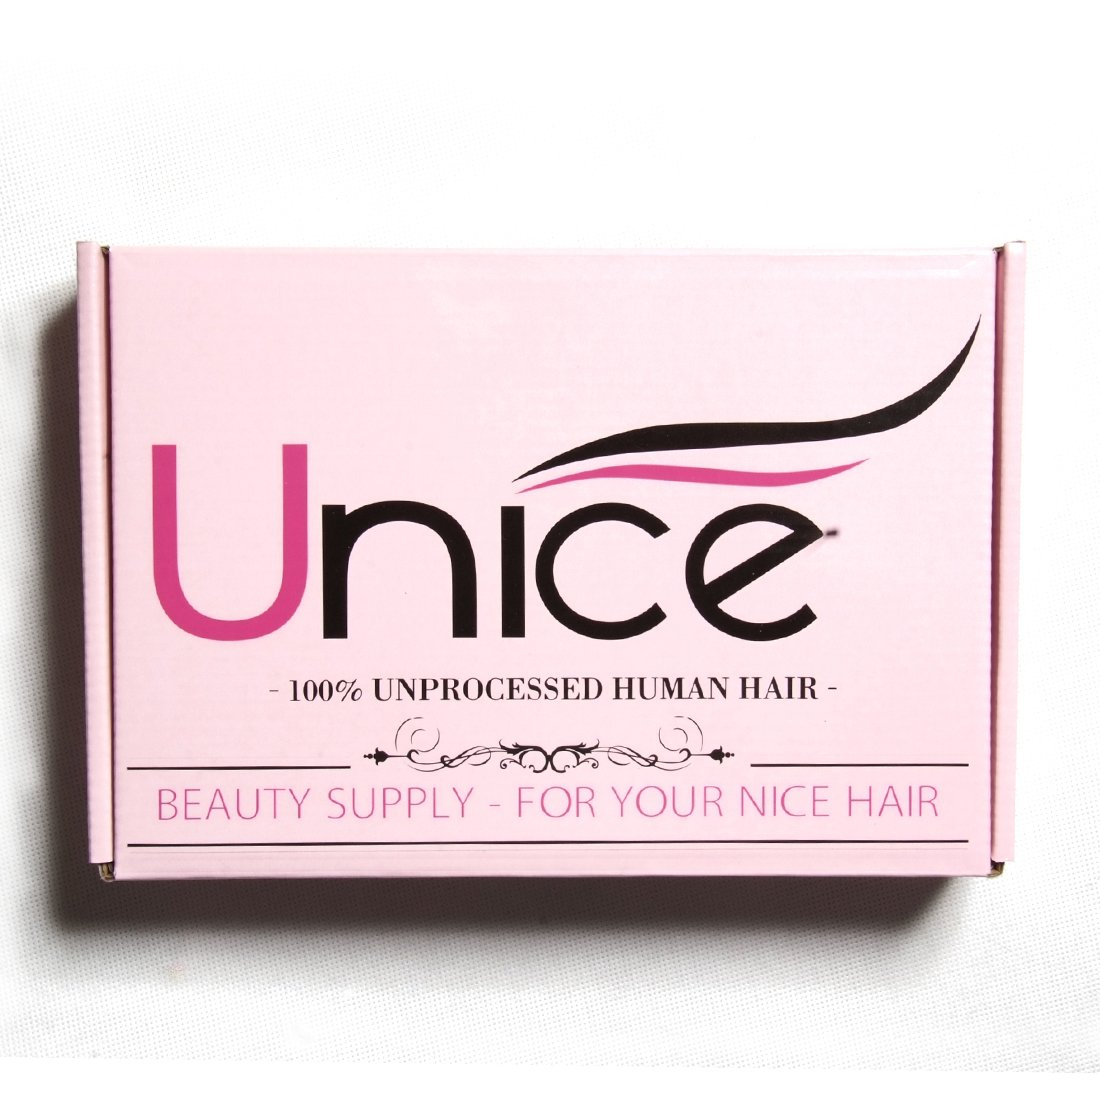 Unice Hair 18 20 22inch Brazilian Virgin Human Hair Weave 3 Bundles Deal Brazilian Body Wave Hair Weft Extensions Natural Color by UNICE (Image #7)